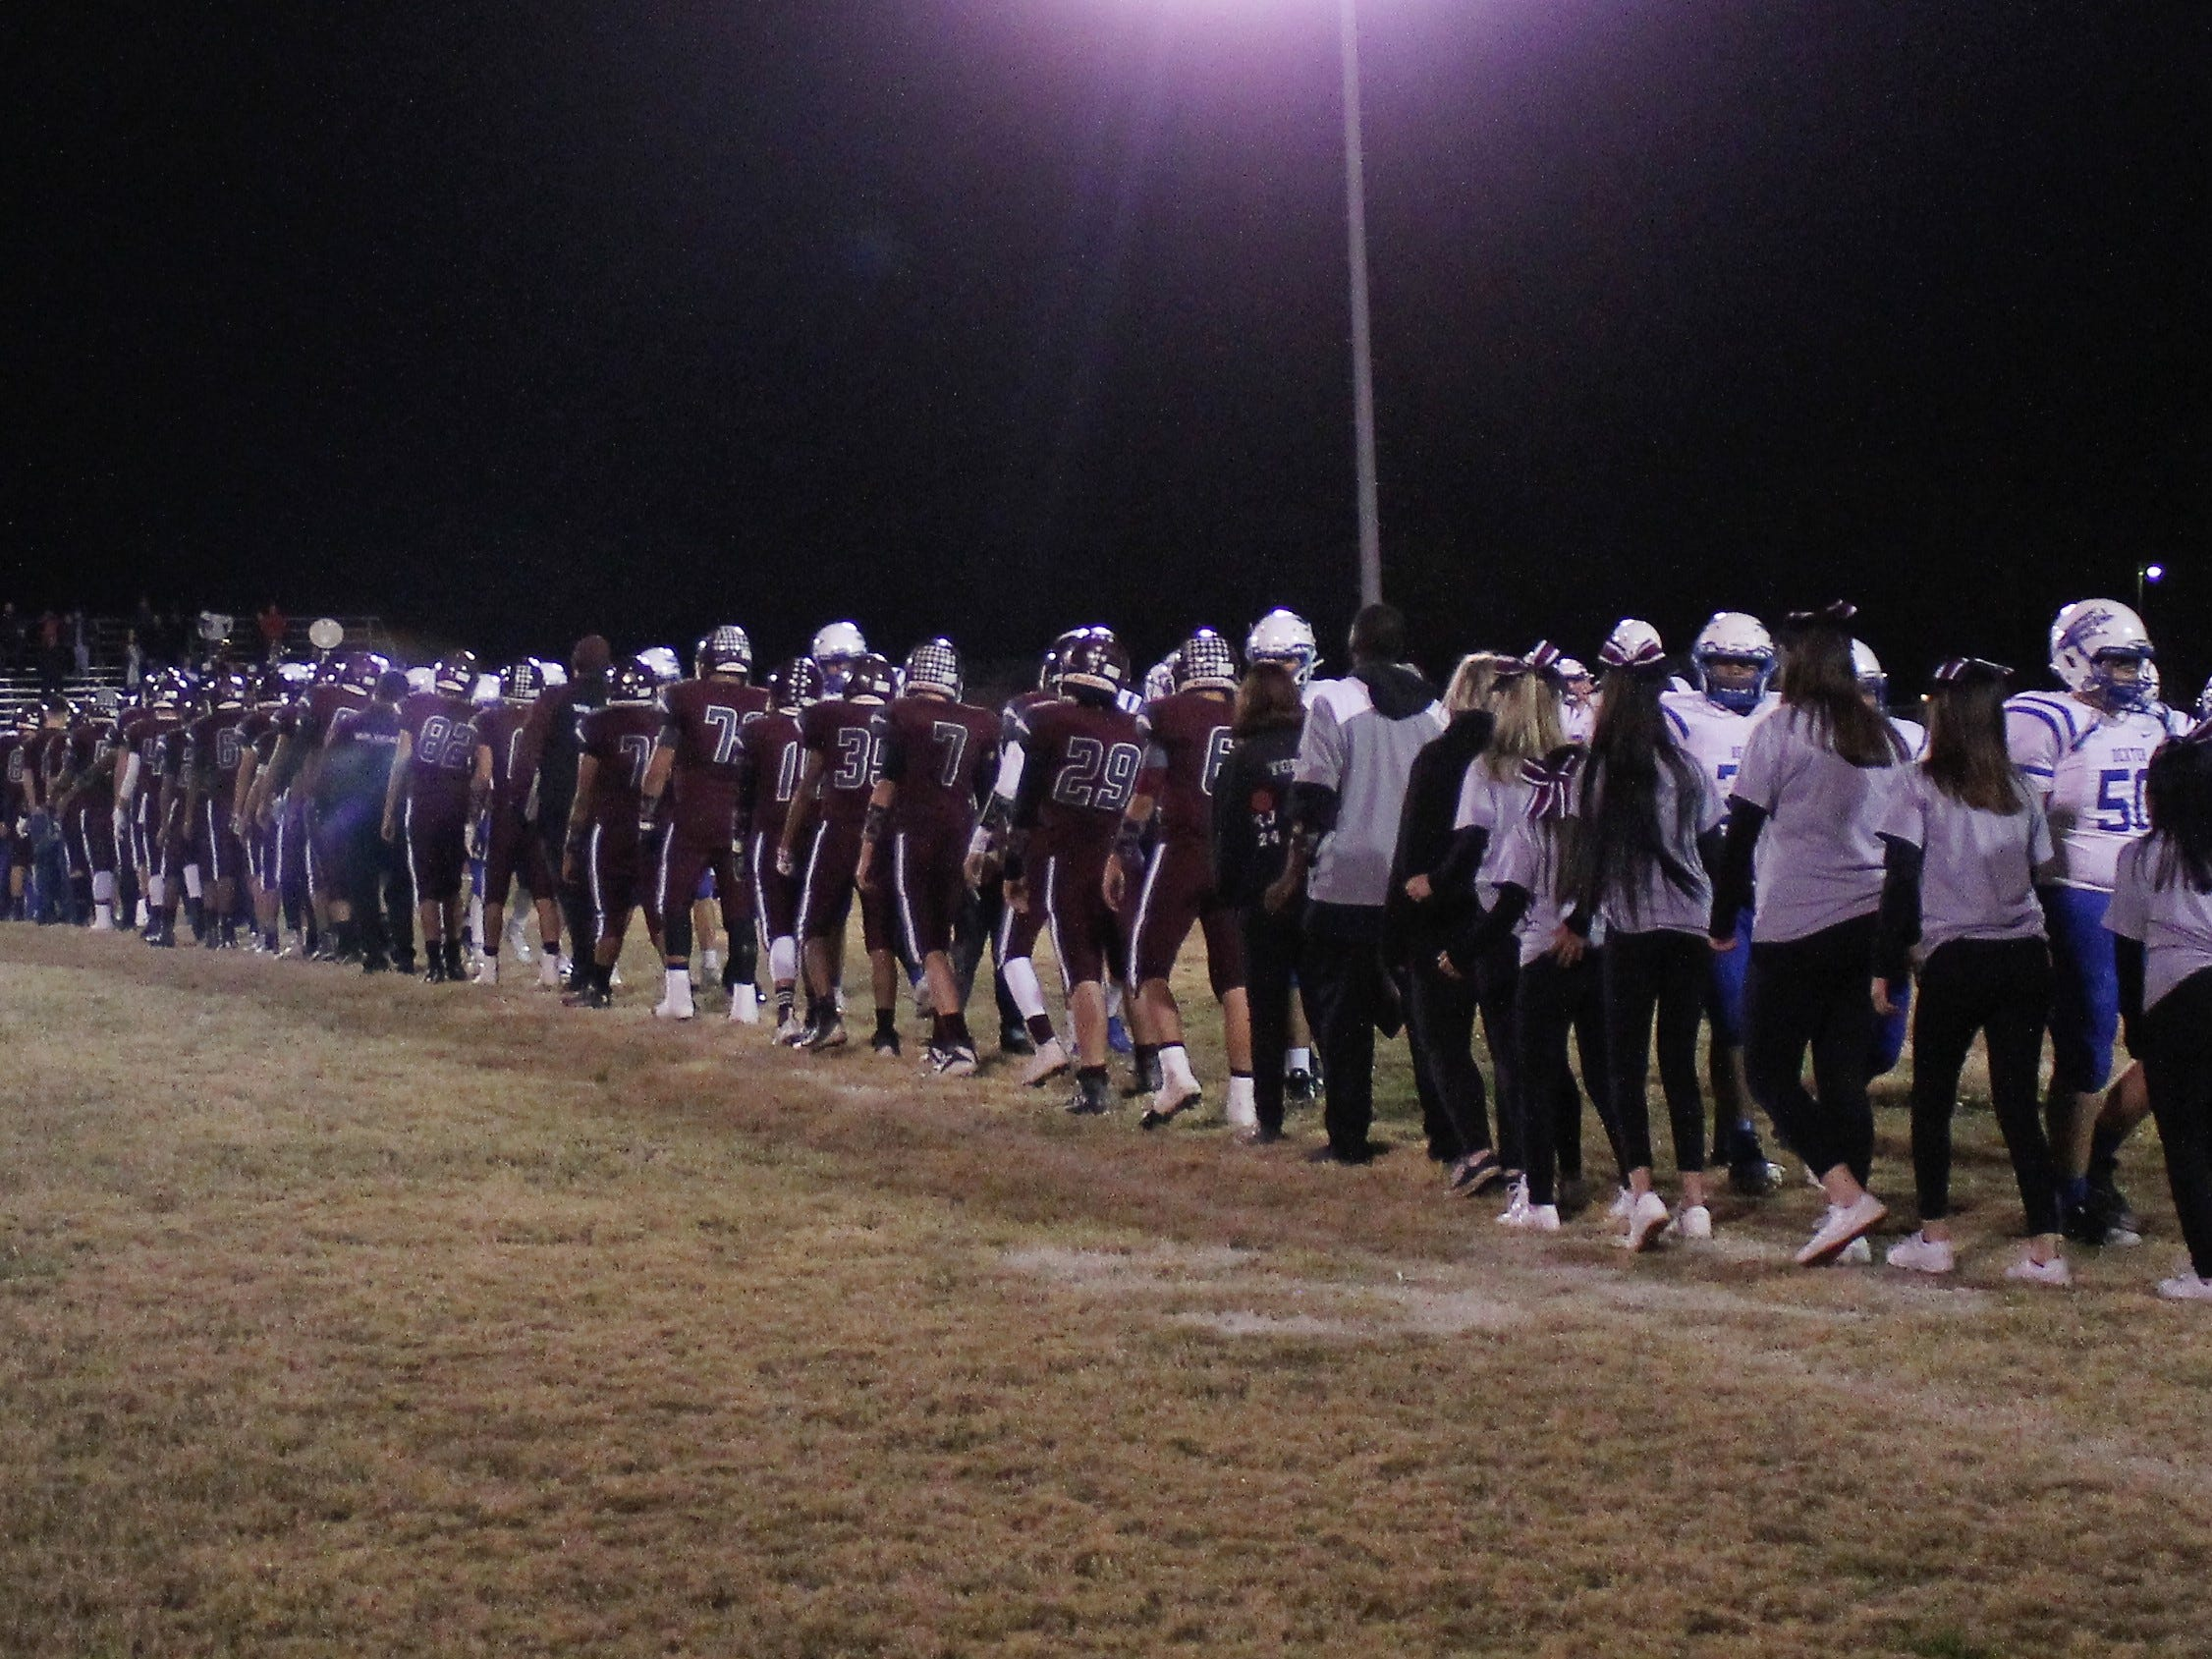 The Tularosa Wildcats and the Dexter Demons football teams, trainers, coaches and cheerleaders shake hands at the end of their game Friday night.